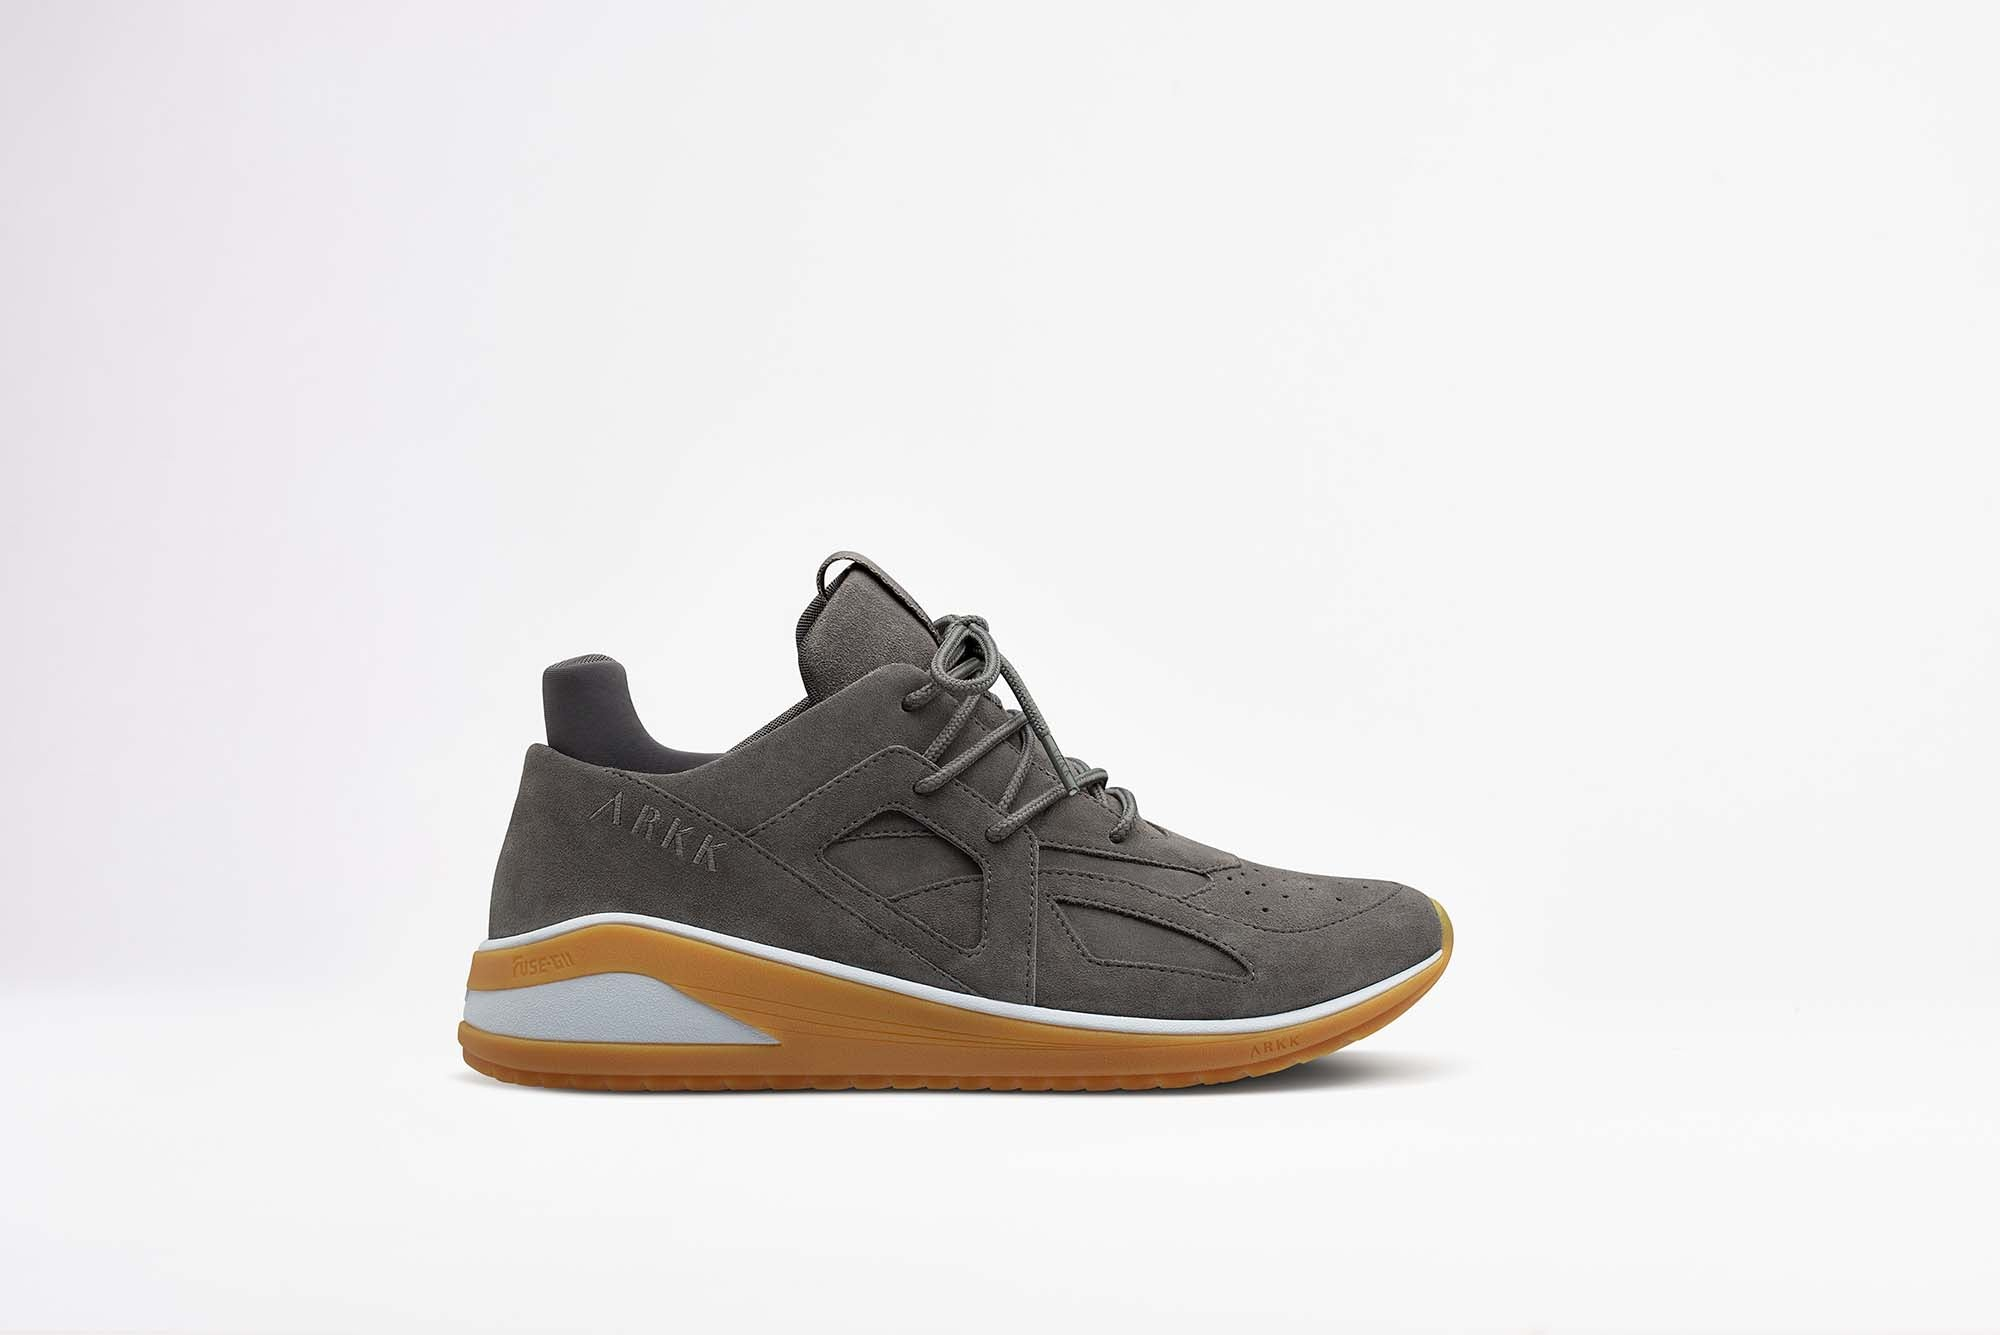 0e5530f072a A list of all available ARKK Copenhagen sneakers for WOMEN – ARKK ...